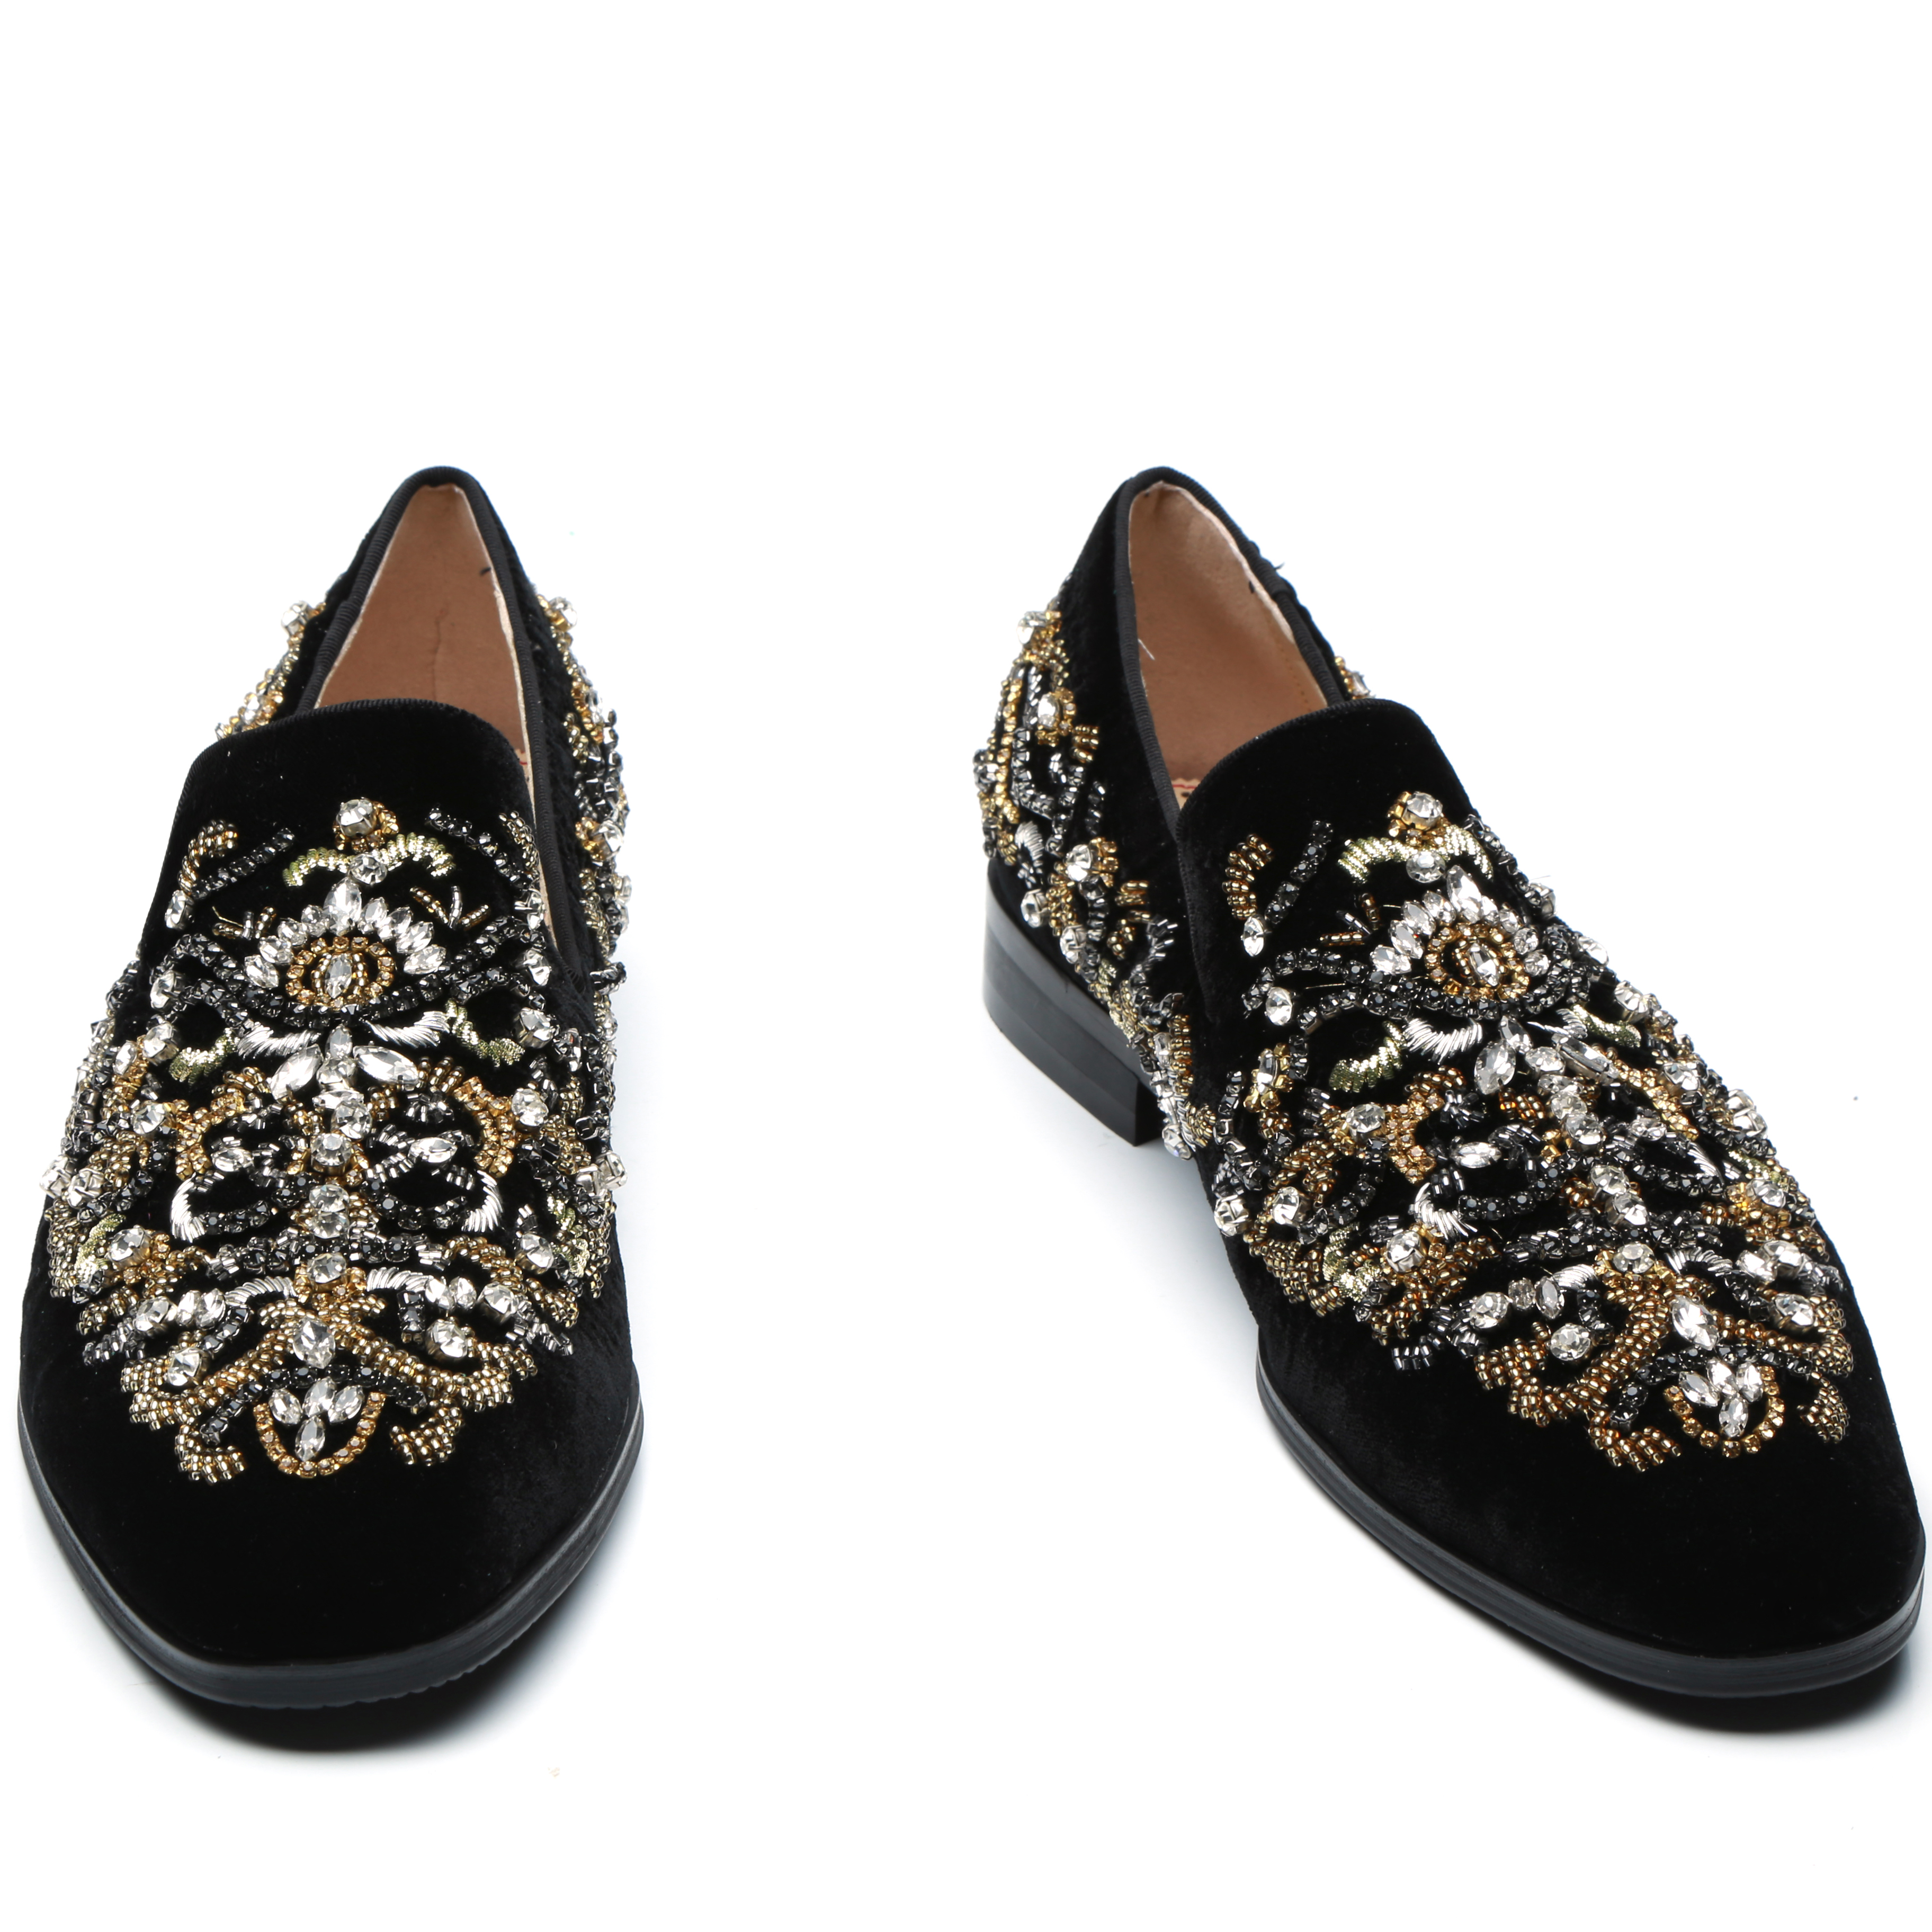 Luxury Black Rhinestone Floral Stud Embroidery Men Shoes Fashion Slip-on Loafer Crystal Men Smoking Party Shoes